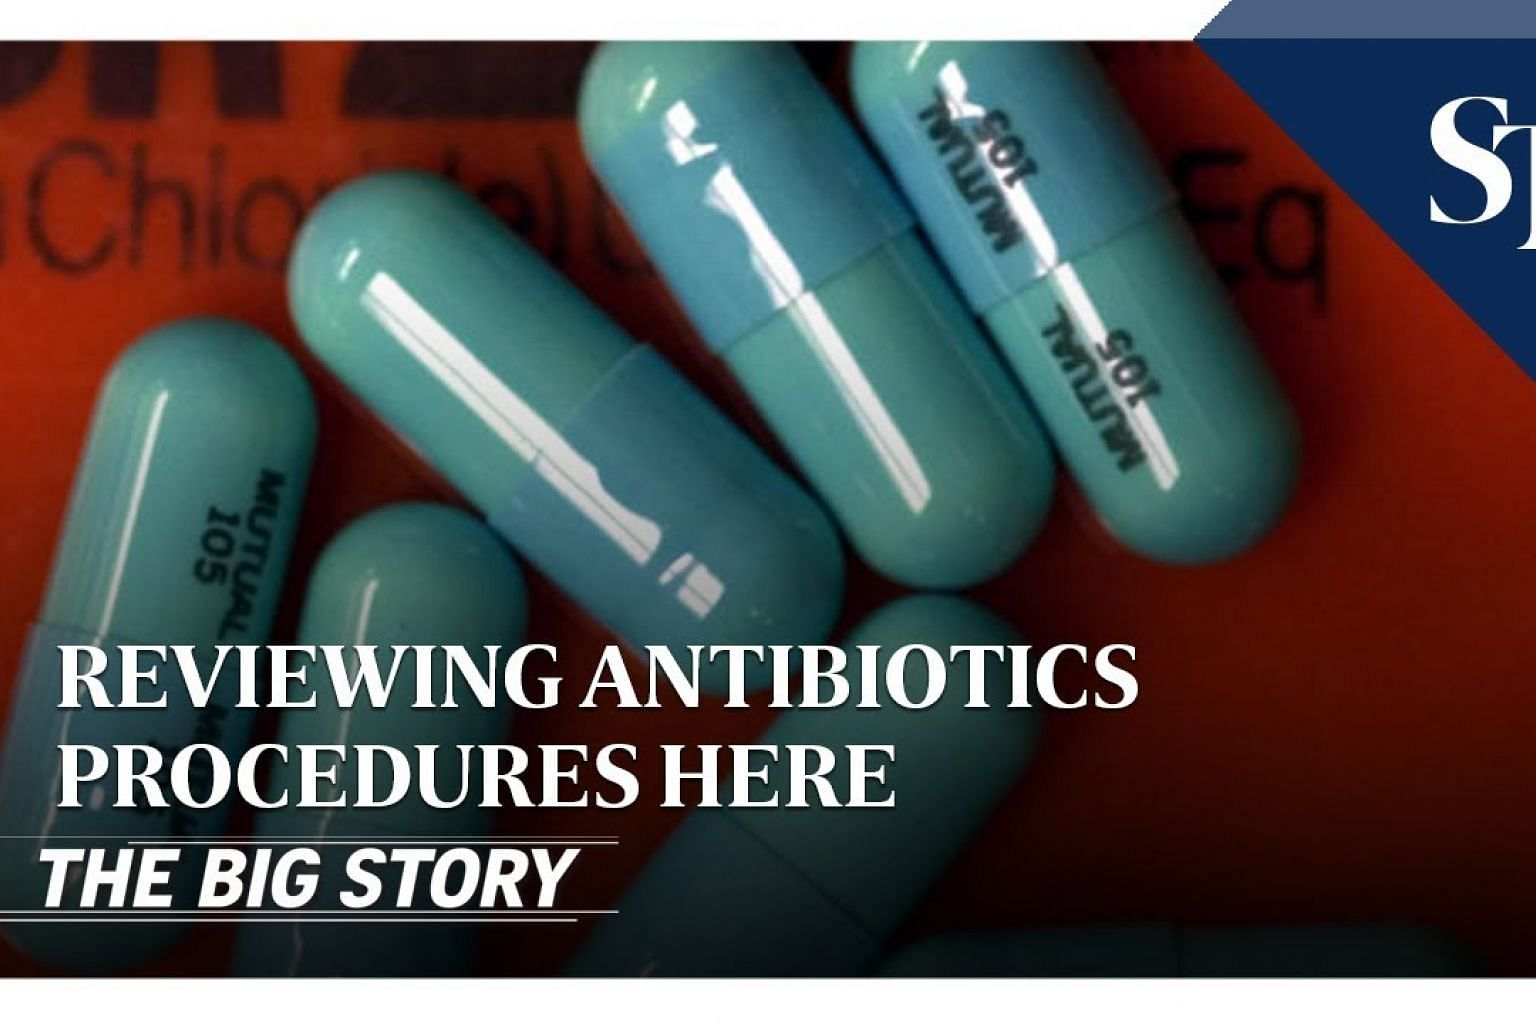 THE BIG STORY: Reviewing antibiotics procedures here | The Straits Times